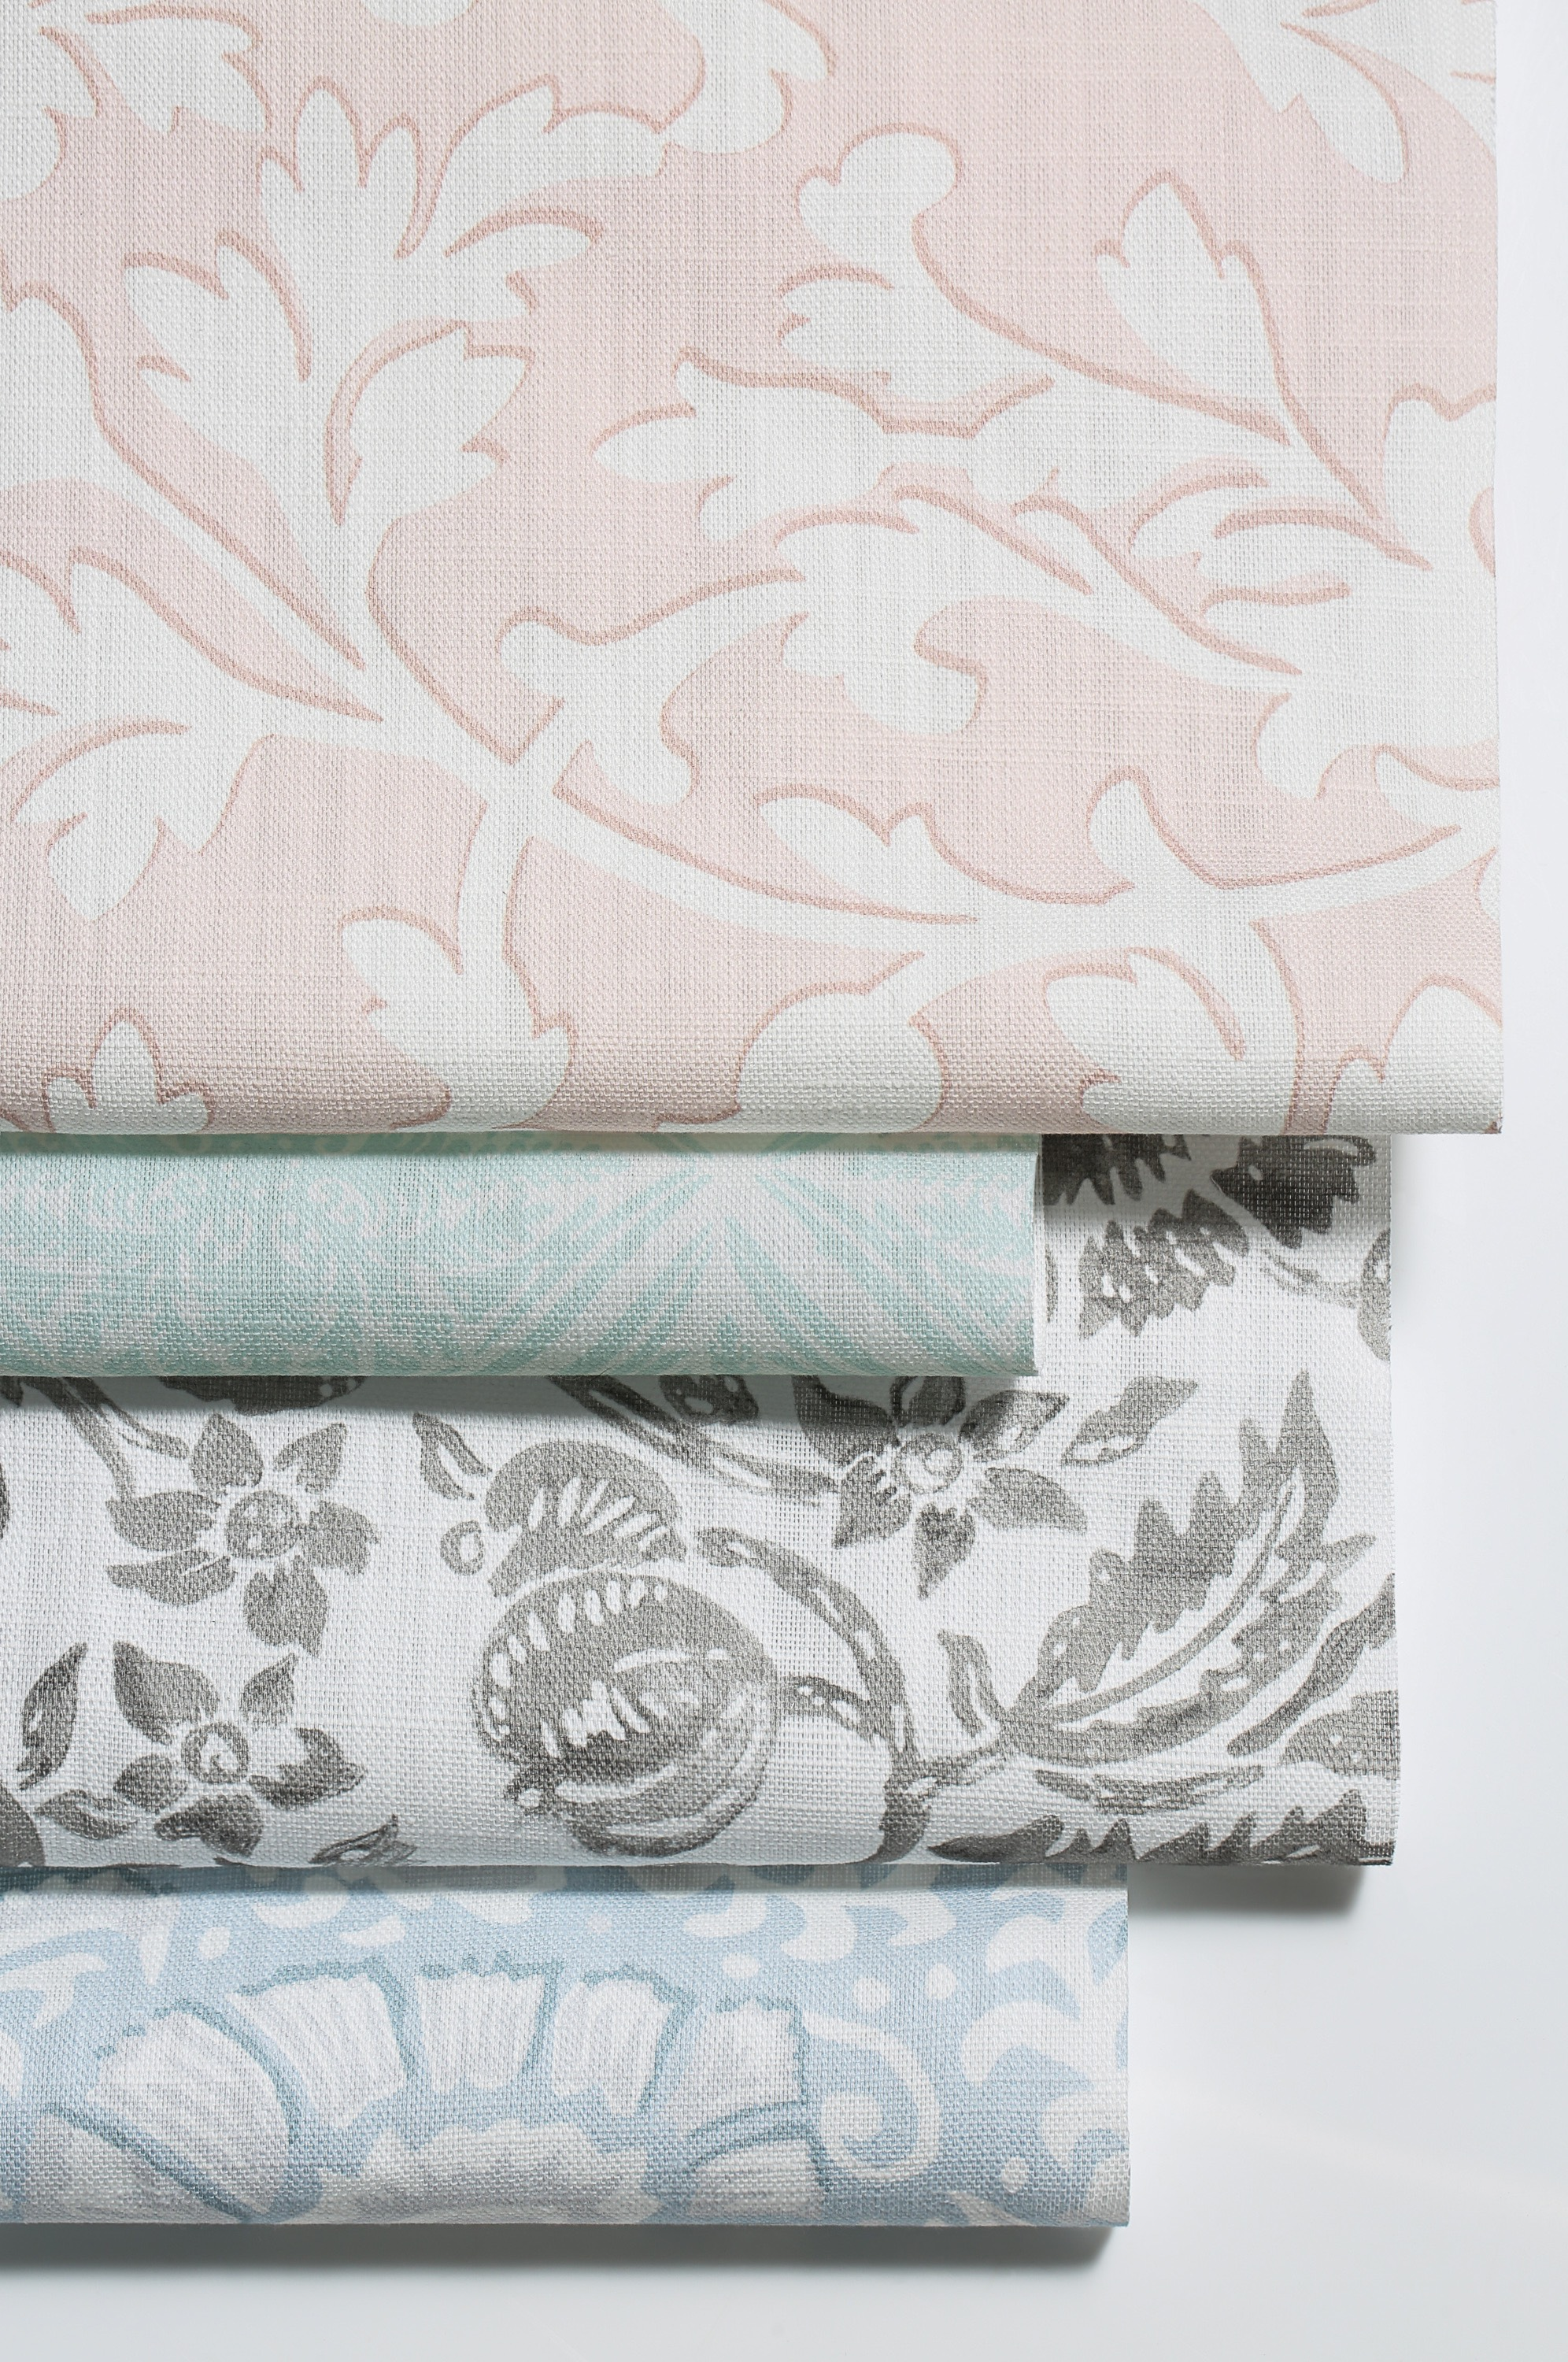 Aerin Lauder Fabric Swatches